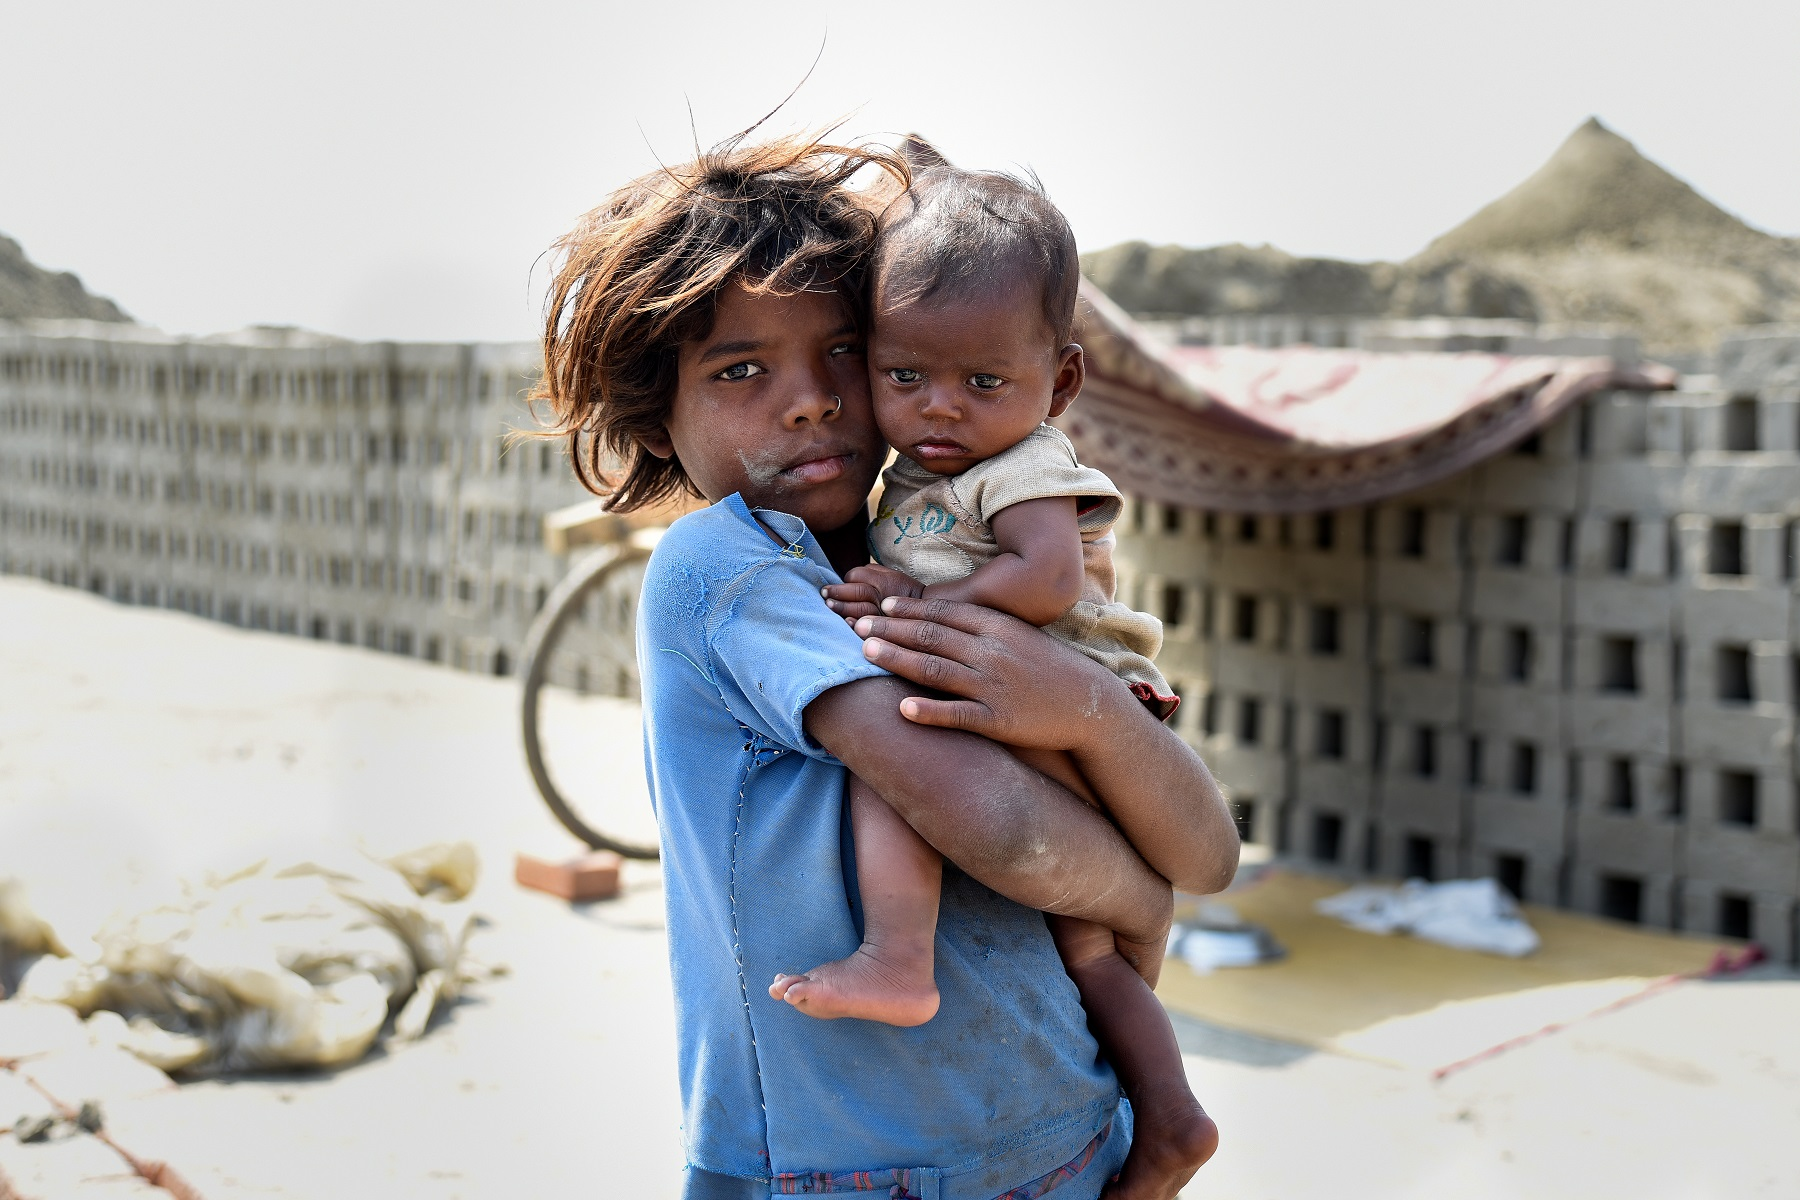 A young Indian girl with her baby sibling in her arms at a brick kiln